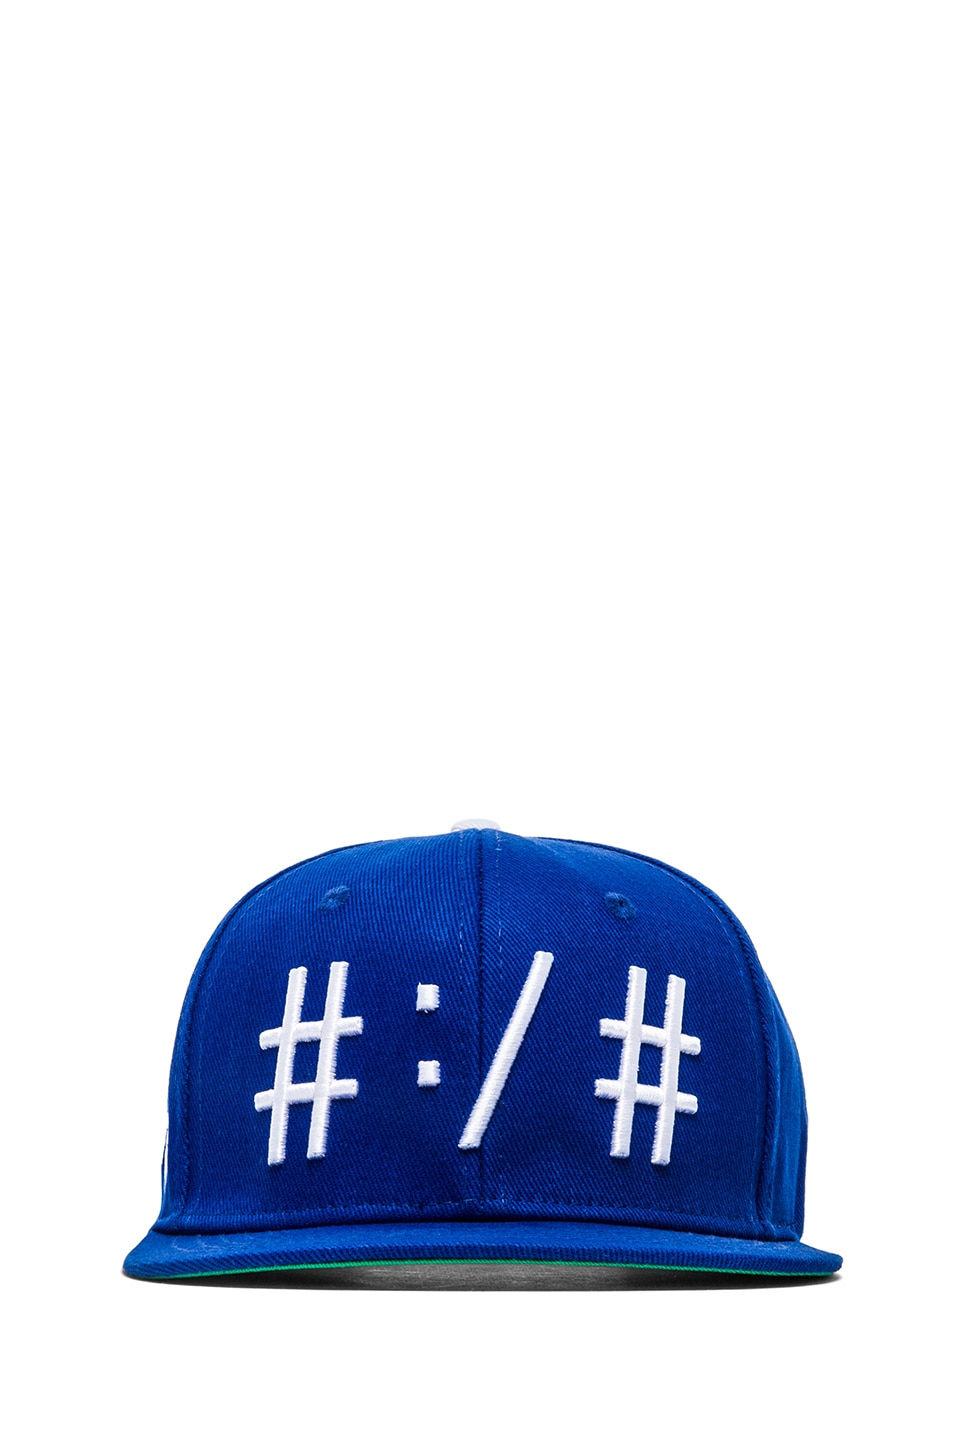 Been Trill Been Troll Eh Hat in Blue and White